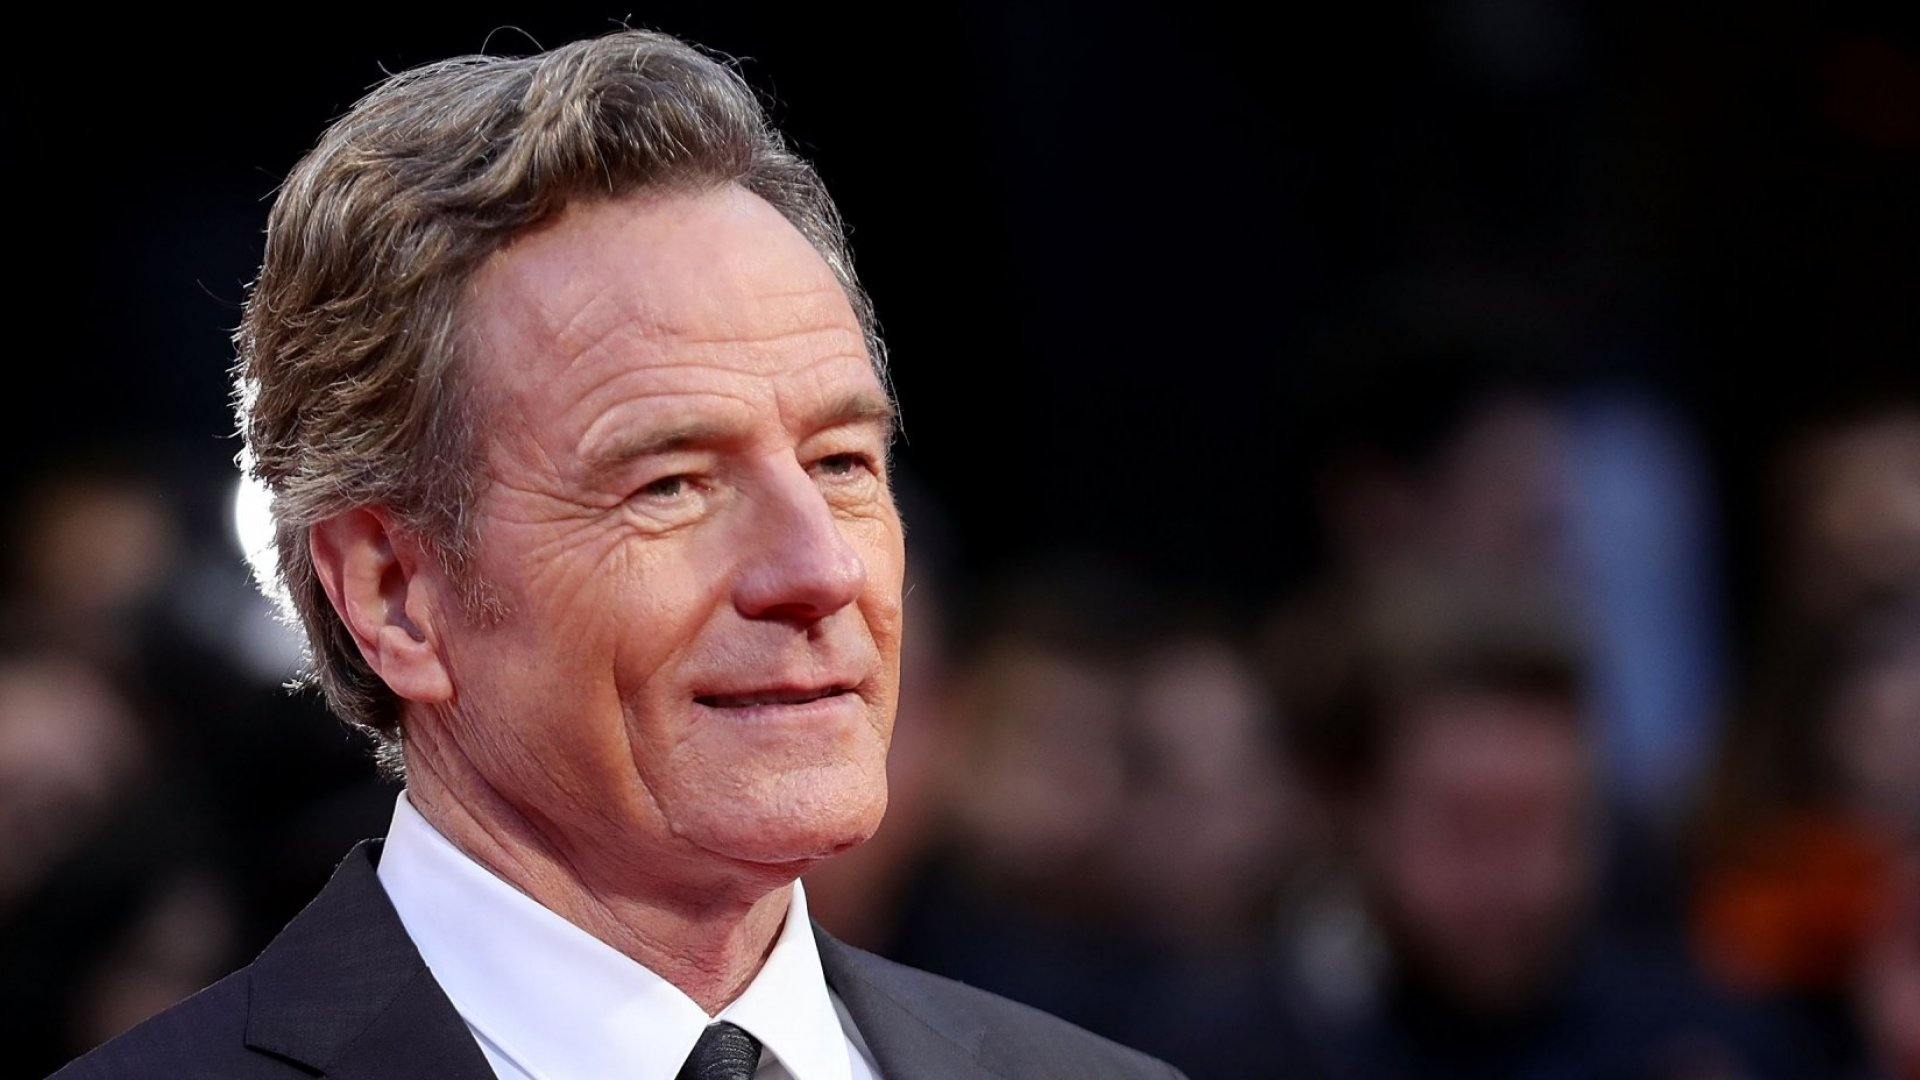 Bryan Cranston Biography, Net Worth 2020